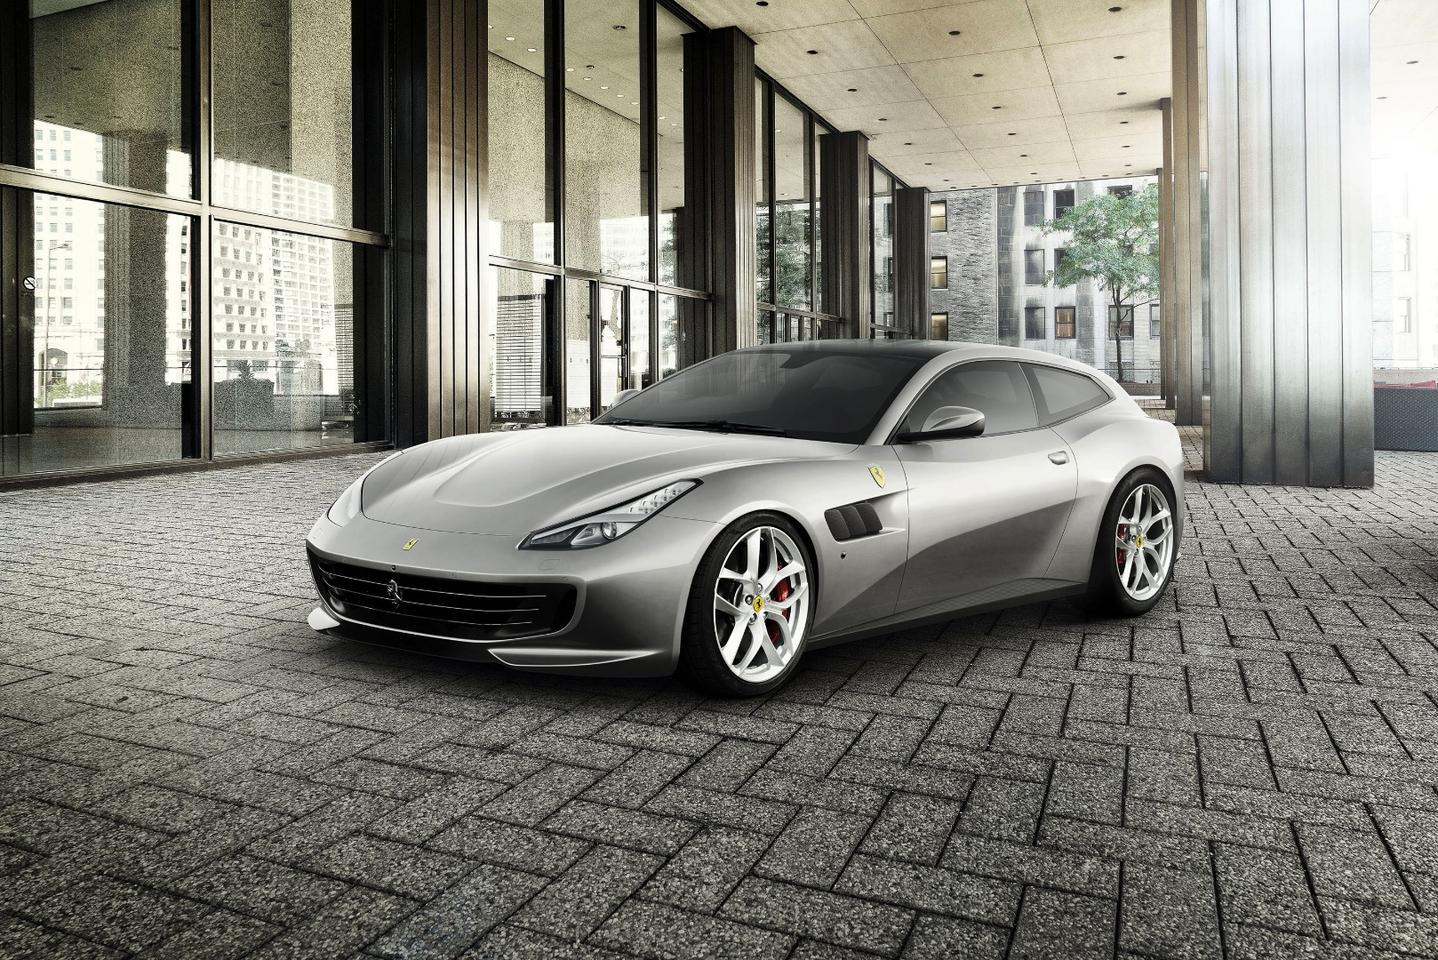 Ferrari introduces theall-new GTC4Lusso as its first four-seater with turbo V8